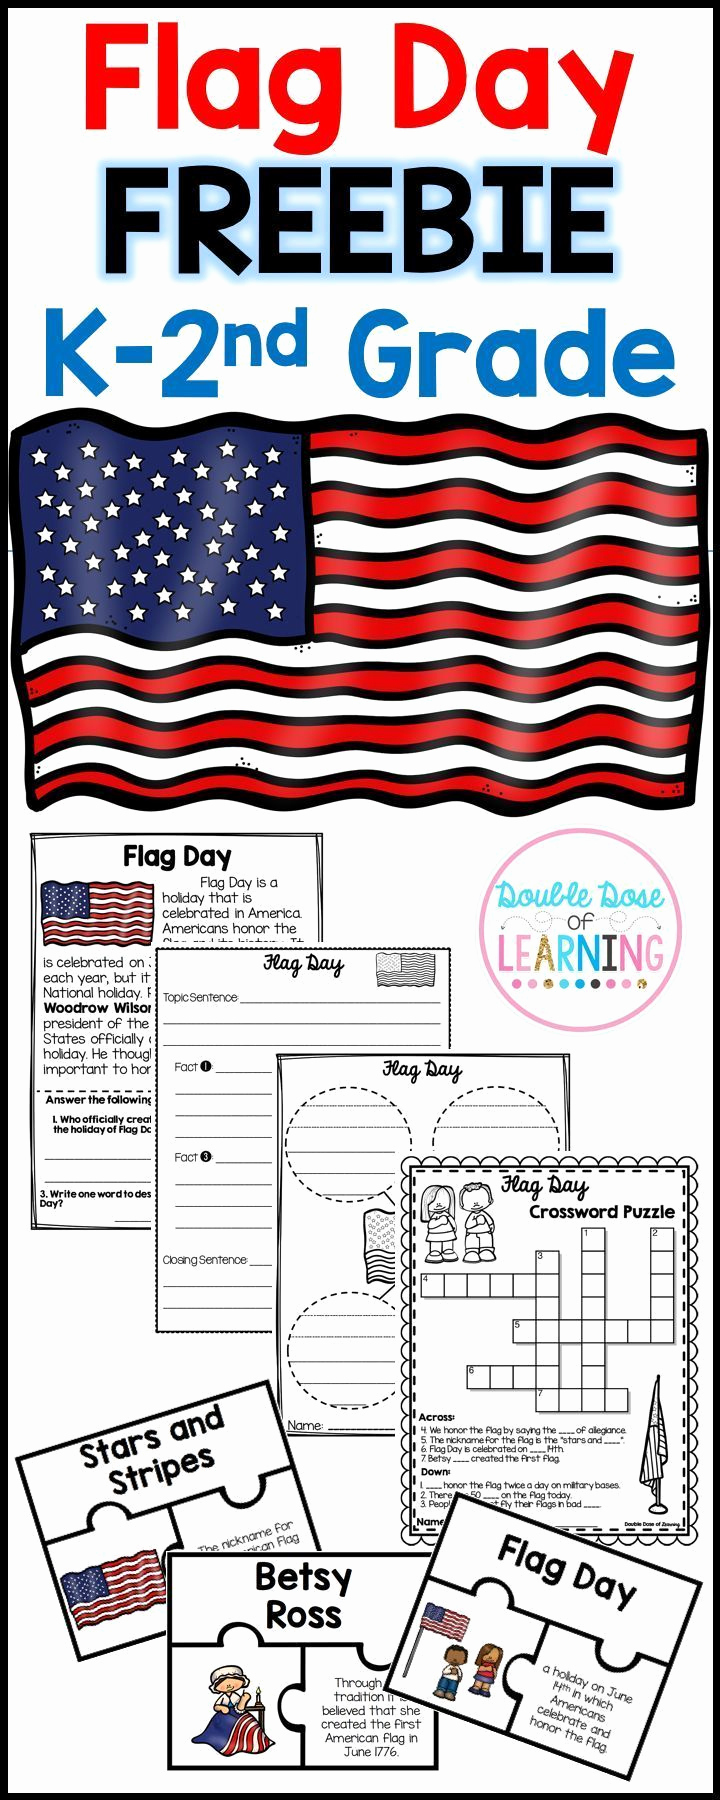 Flag Day Reading Comprehension Worksheets Lovely Flag Day Research Unit for K 2nd Grade